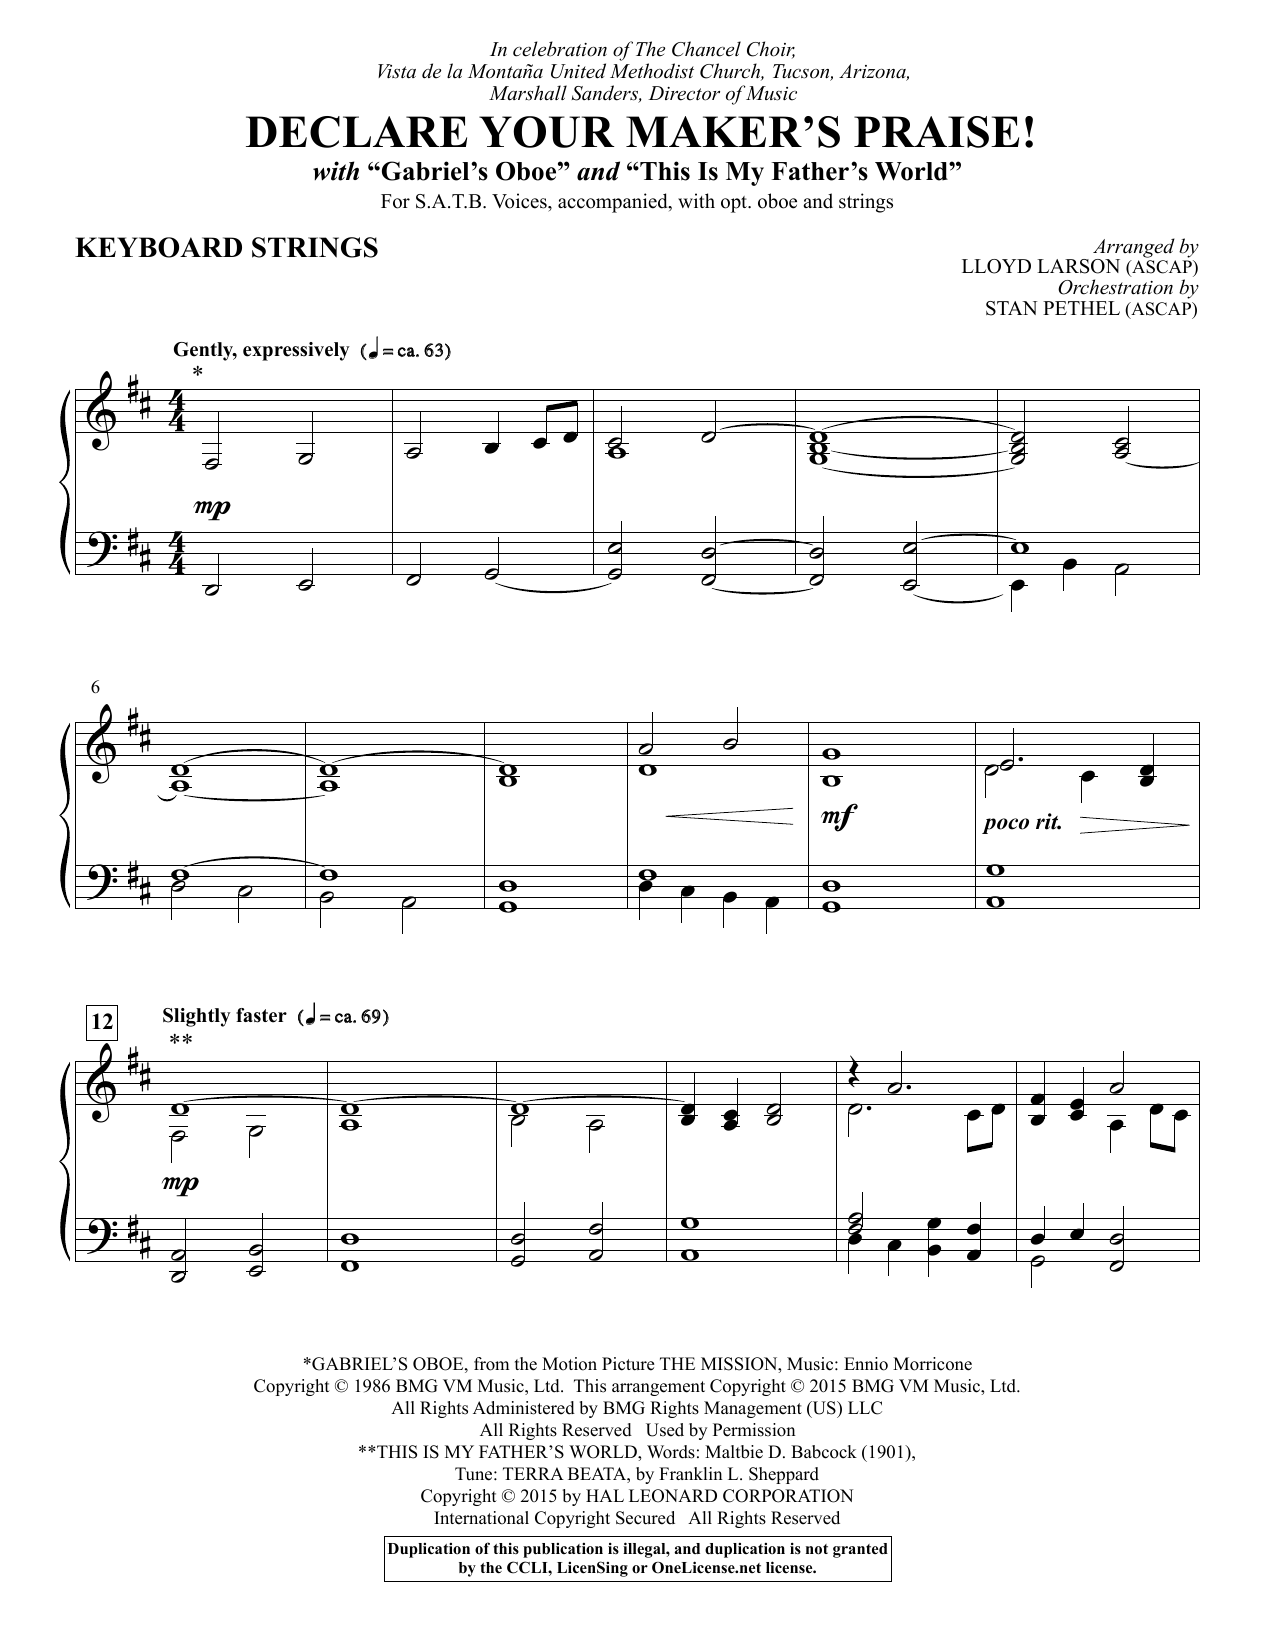 Lloyd Larson Declare Your Maker's Praise! - Keyboard String Reduction sheet music notes and chords. Download Printable PDF.